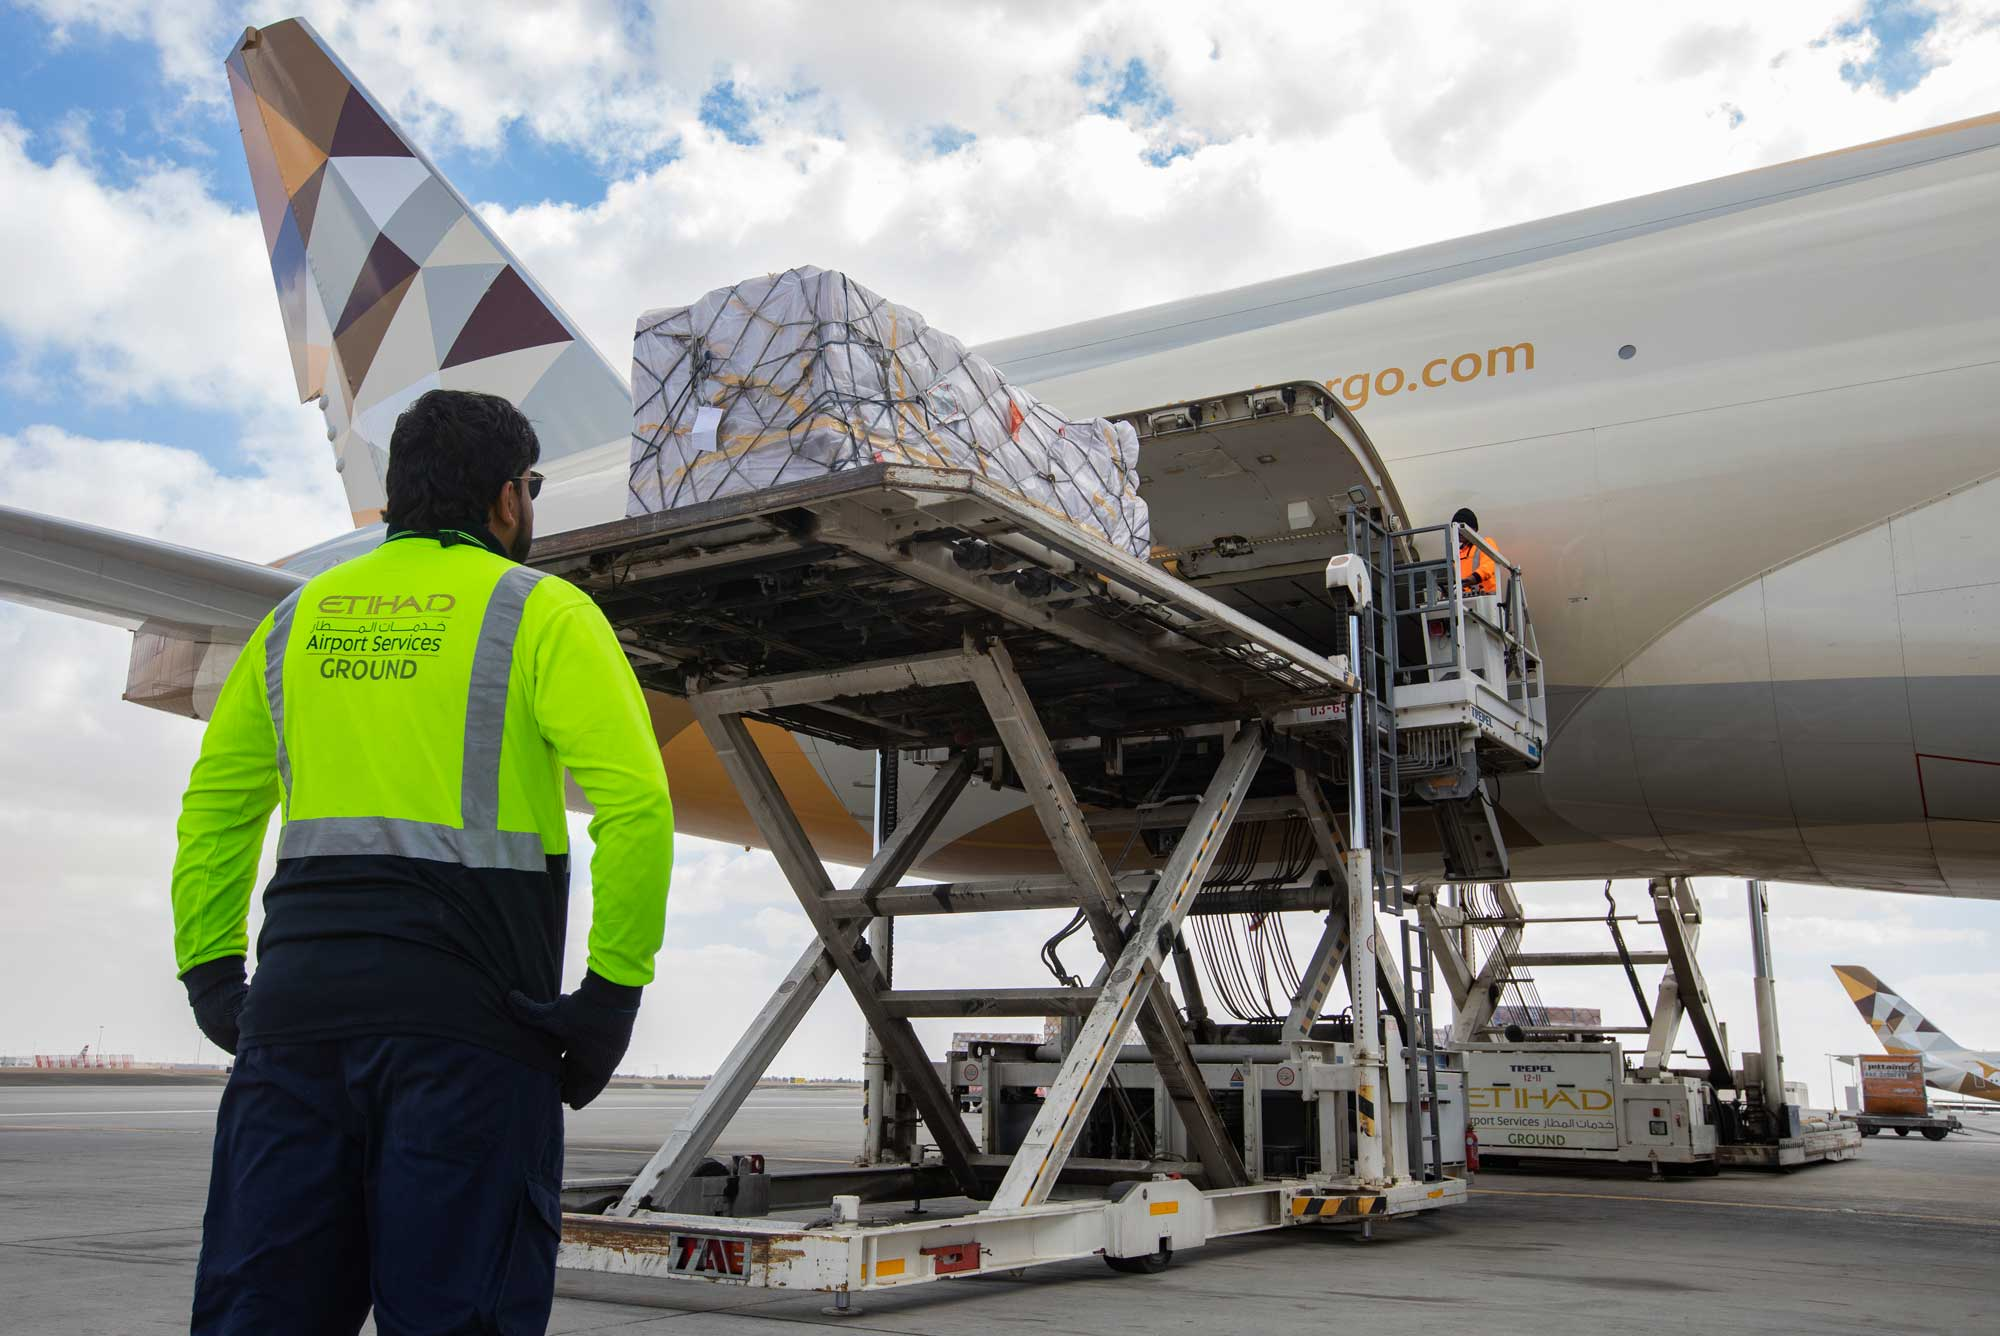 In Q3 2020, Etihad Cargo witnessed 20% growth in perishables compared to the same period last year